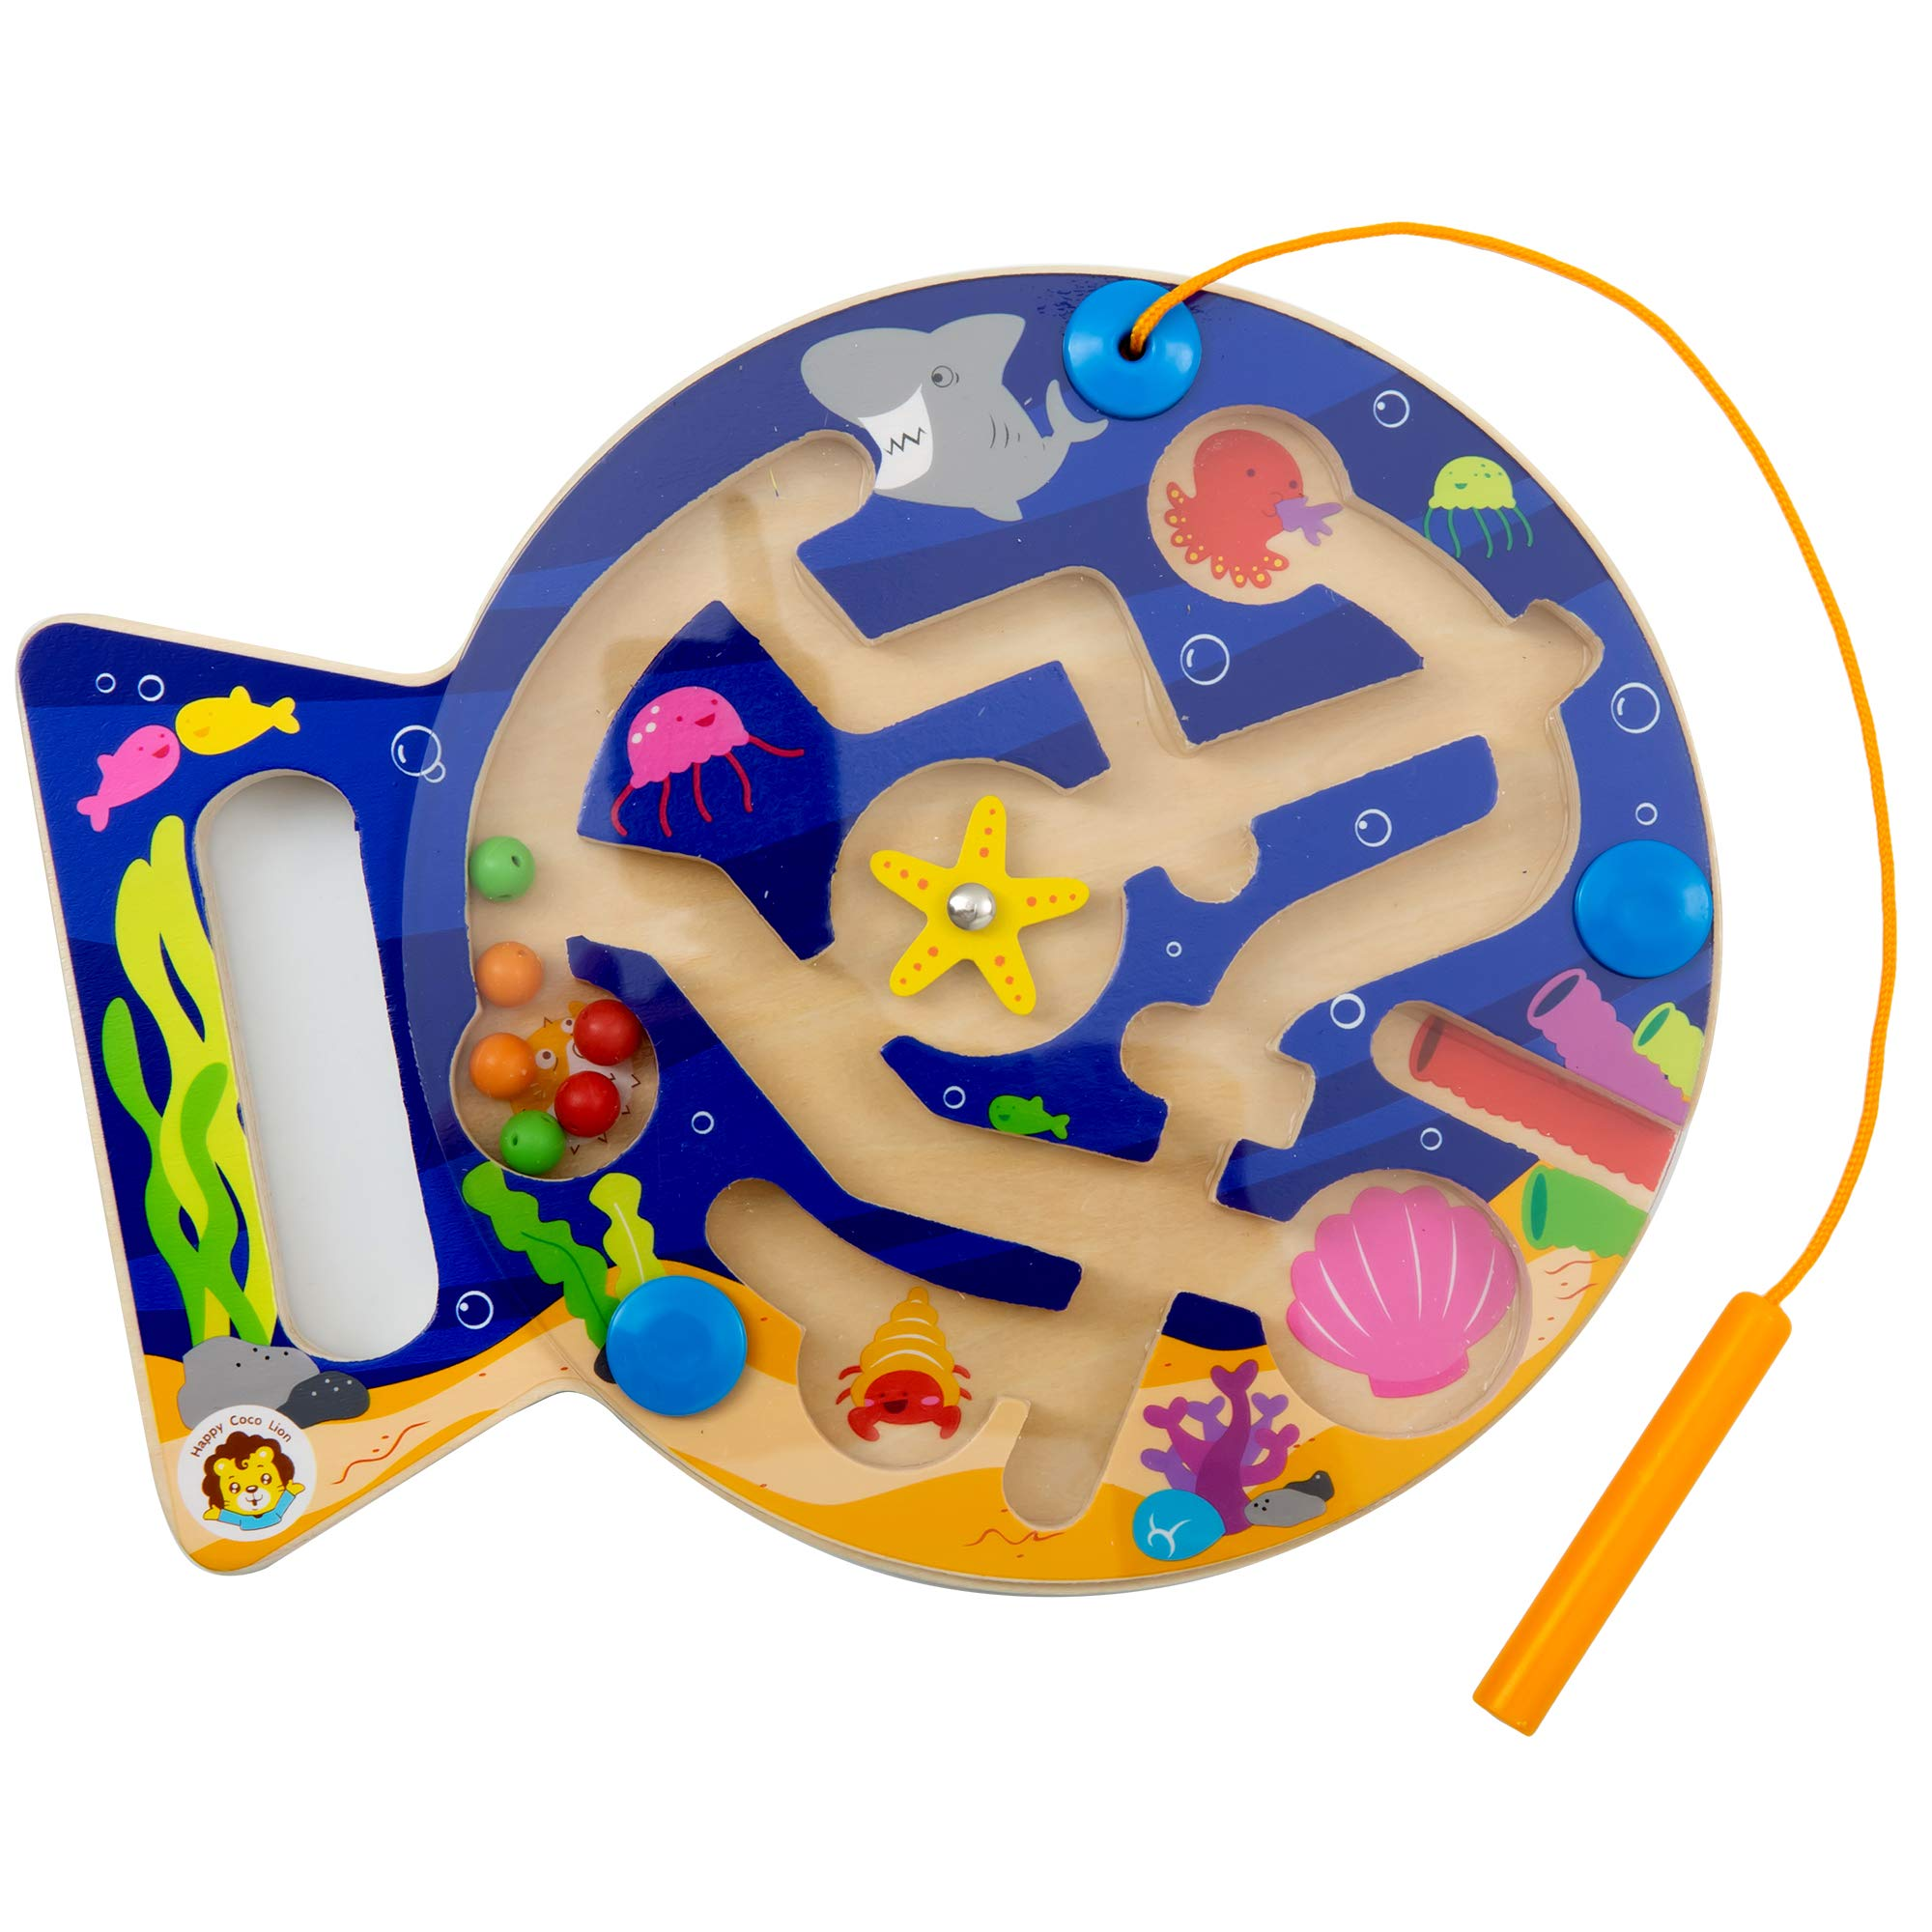 Happy Cocolion Maze Magnetic Puzzle Game, Wooden Maze Magnetic Learning & Education Toys with Marine Animals, Fine Motor Skills Toys for Toddler